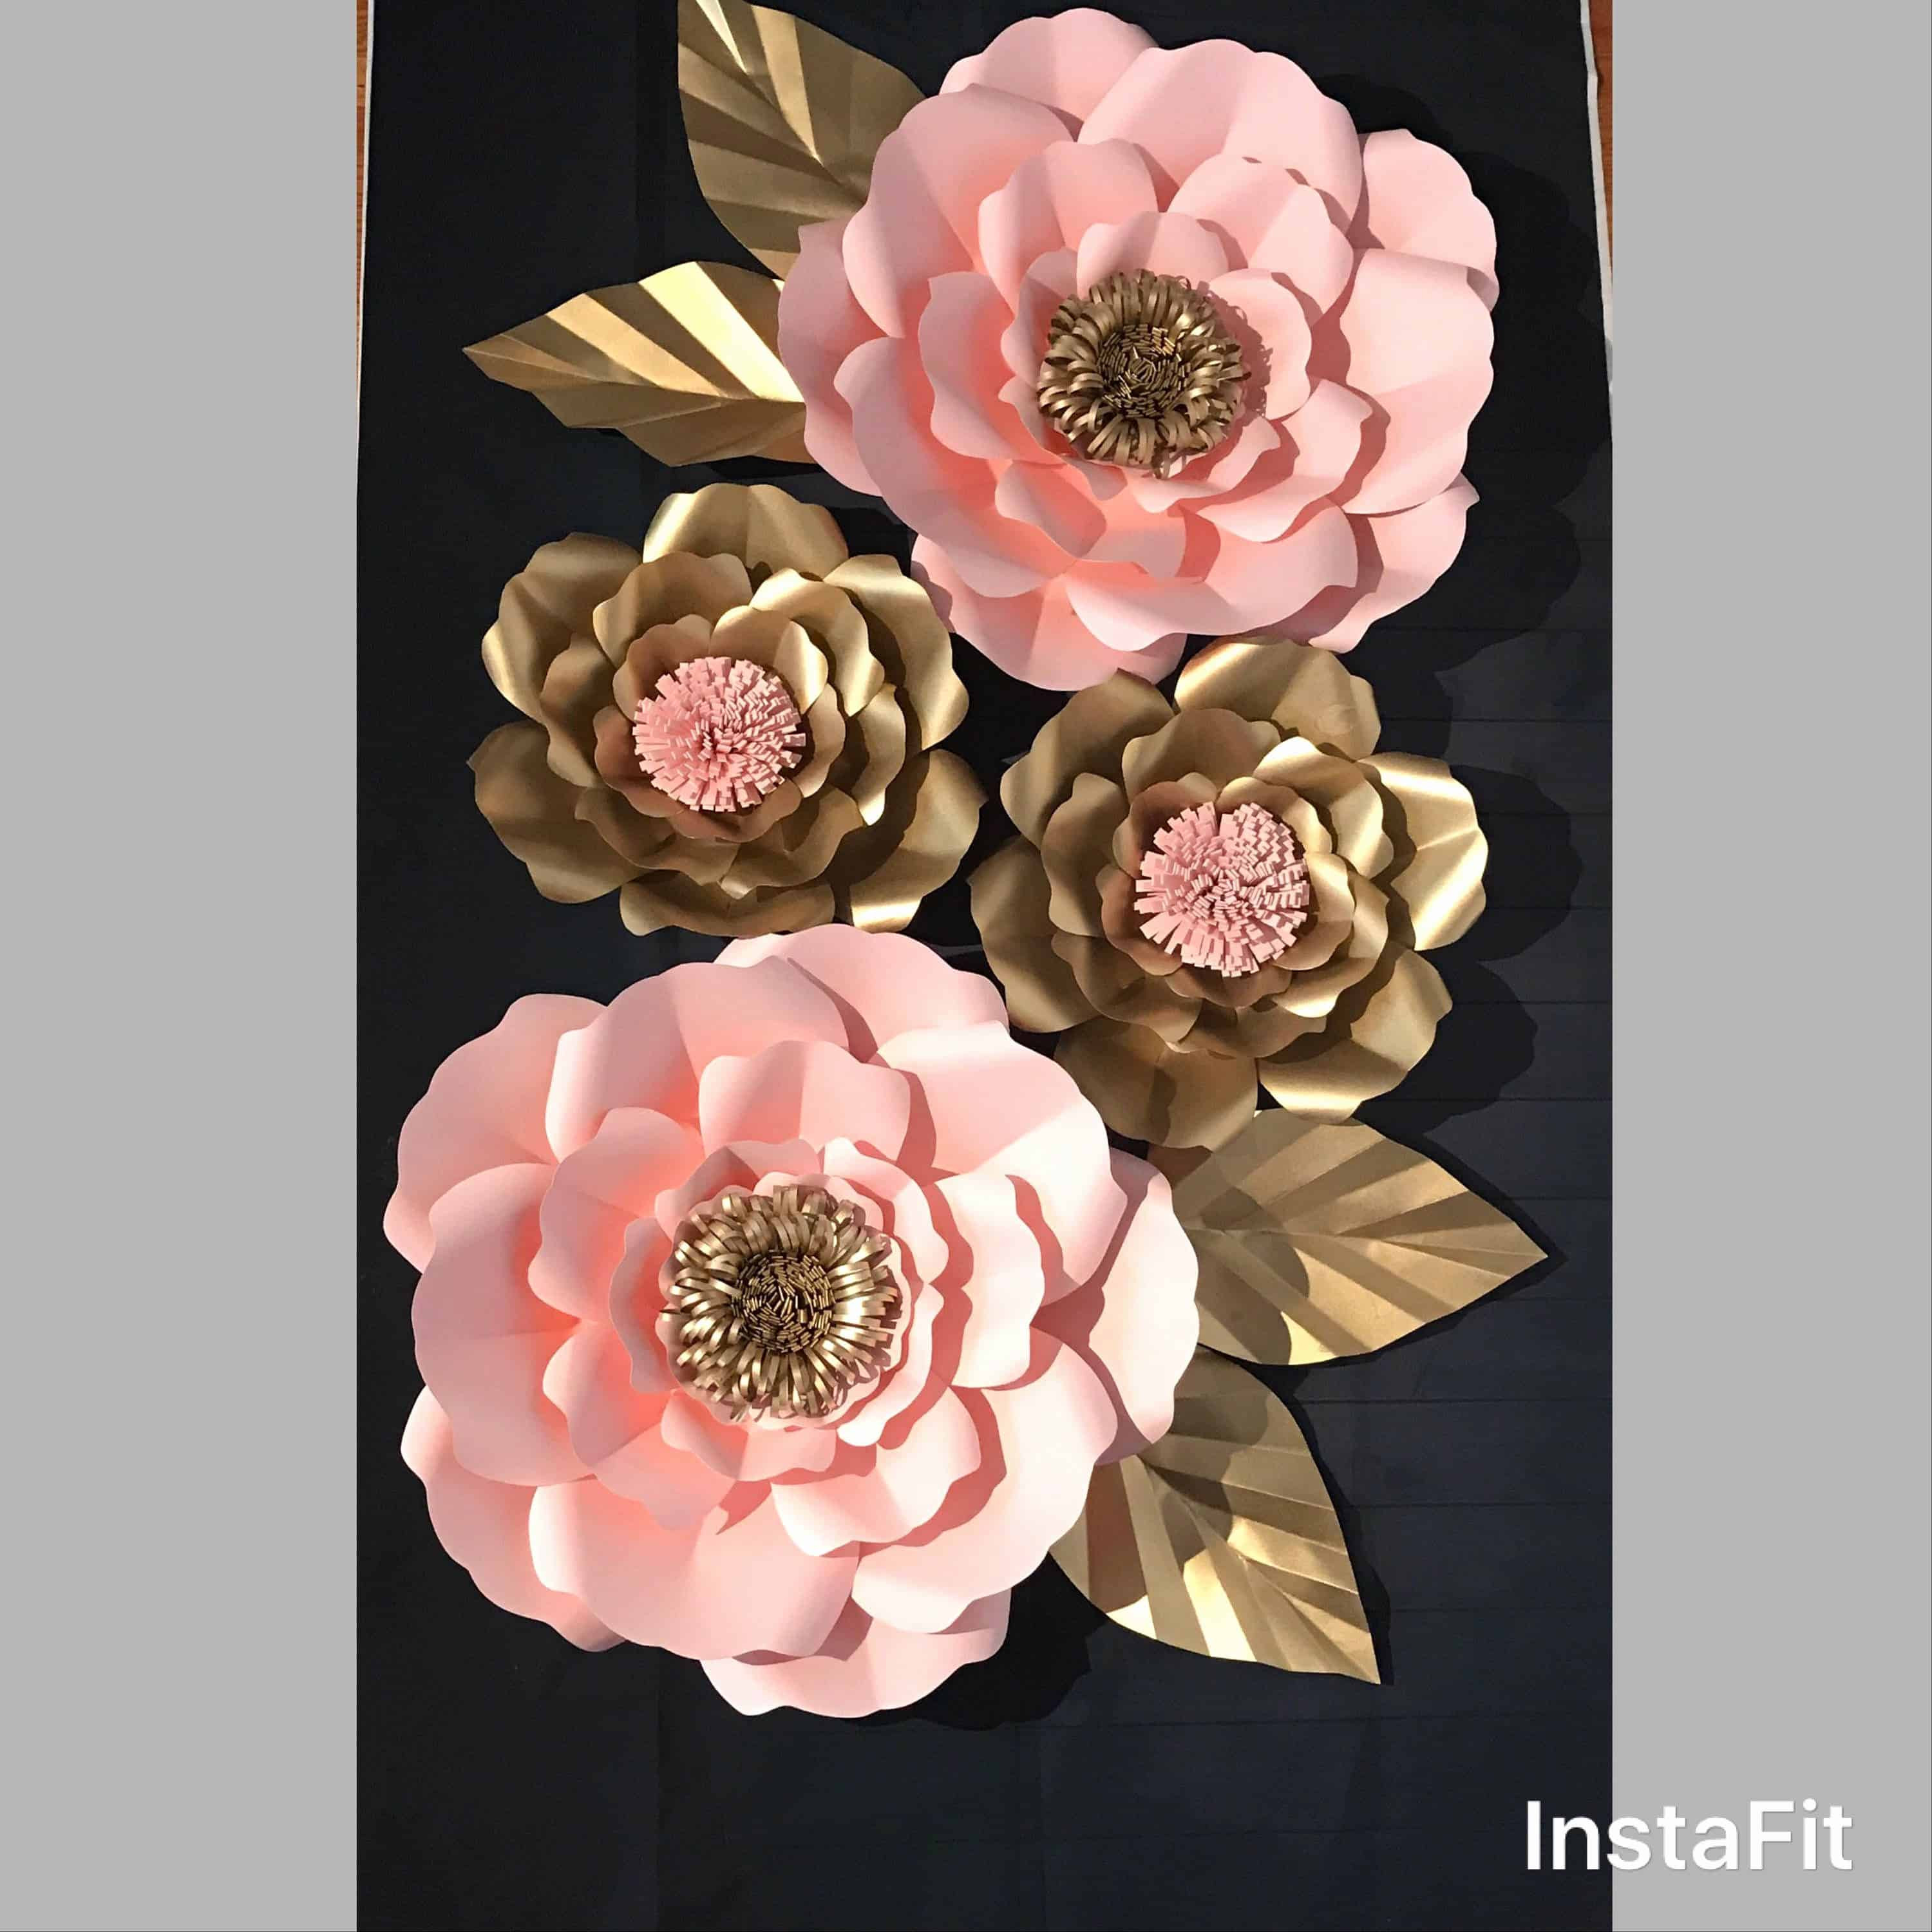 Farmhouse Metal Wall Vase Of Amazing Home Decor Accents Flair Home Decorating Ideas Pertaining to Gold Home Decor Accents Inspirational Floral Decor for Home Beautiful Decor Floral Decor Floral Decor 0d